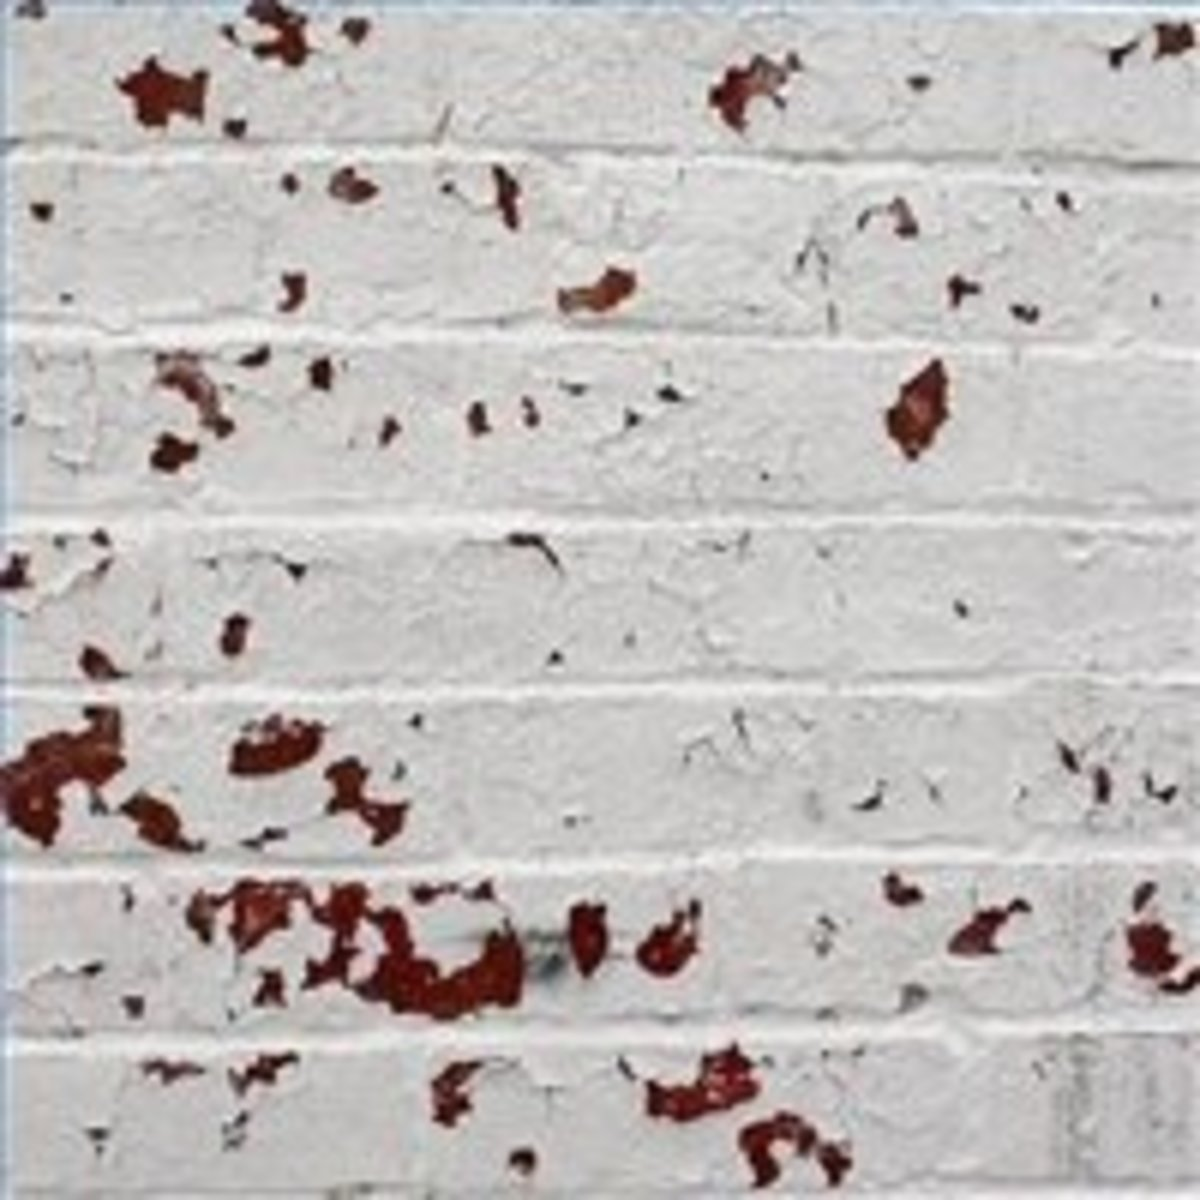 Peeling paint on improperly prepared bricks... avoid this!